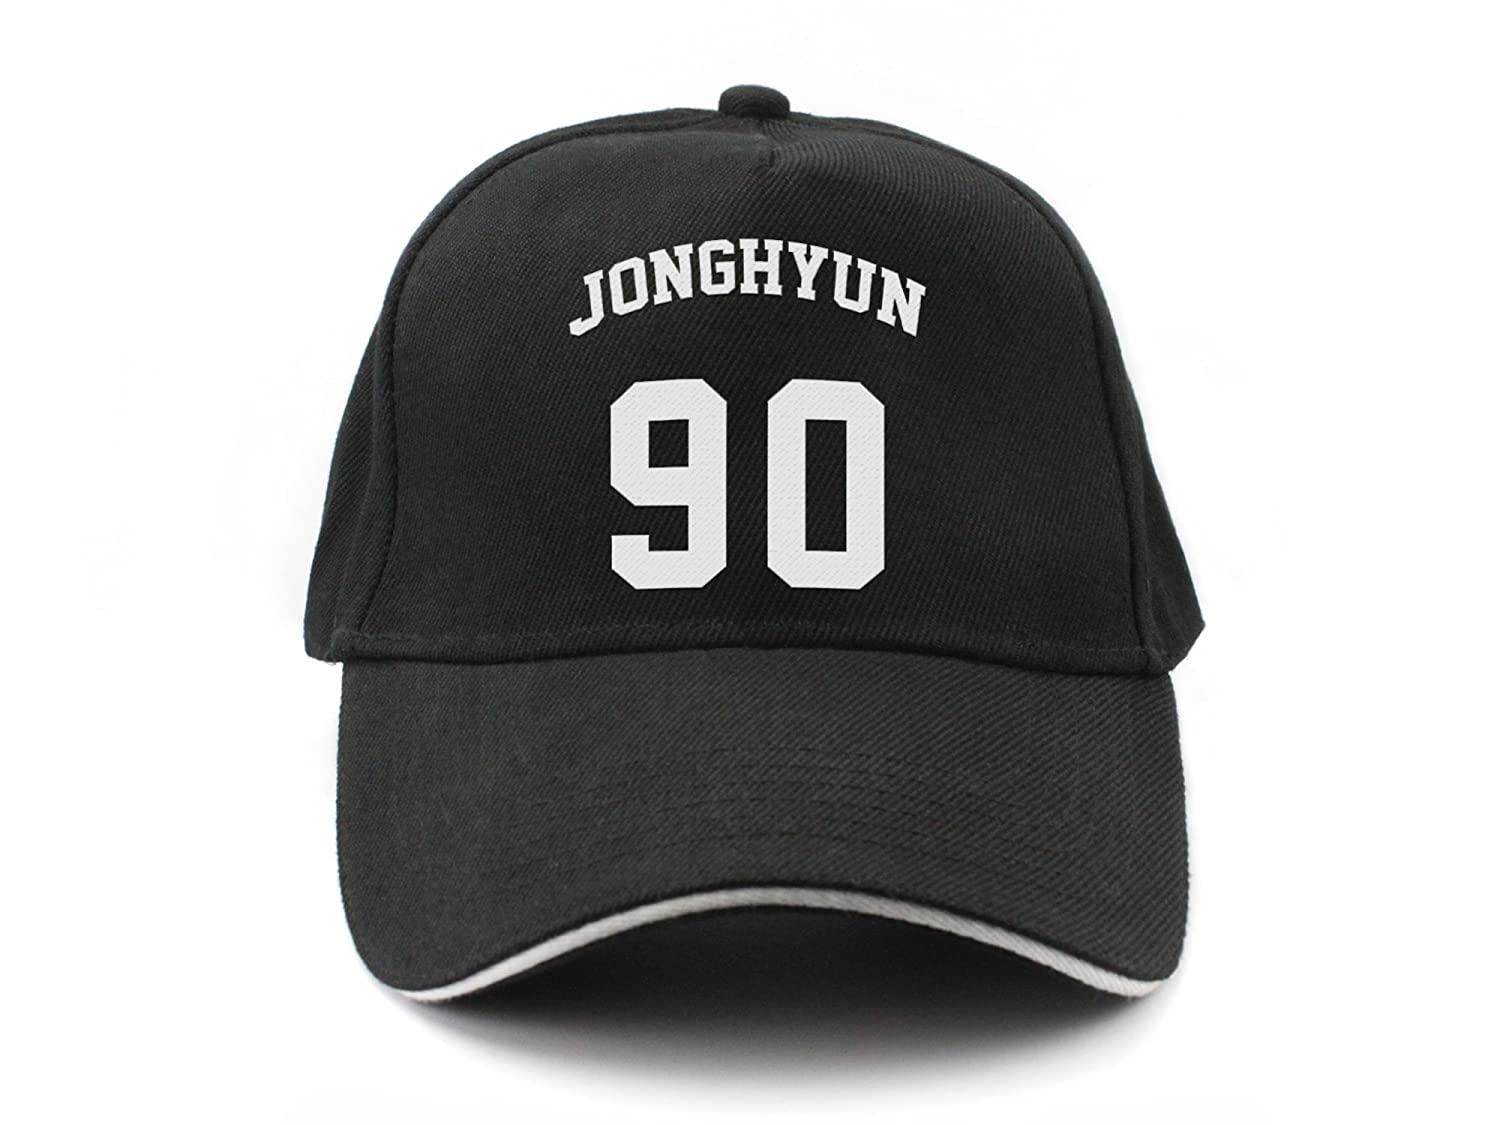 Fanstown Kpop Shinee Member Name and Birth Year Number Baseball Cap Fanshion Snapback with lomo Card